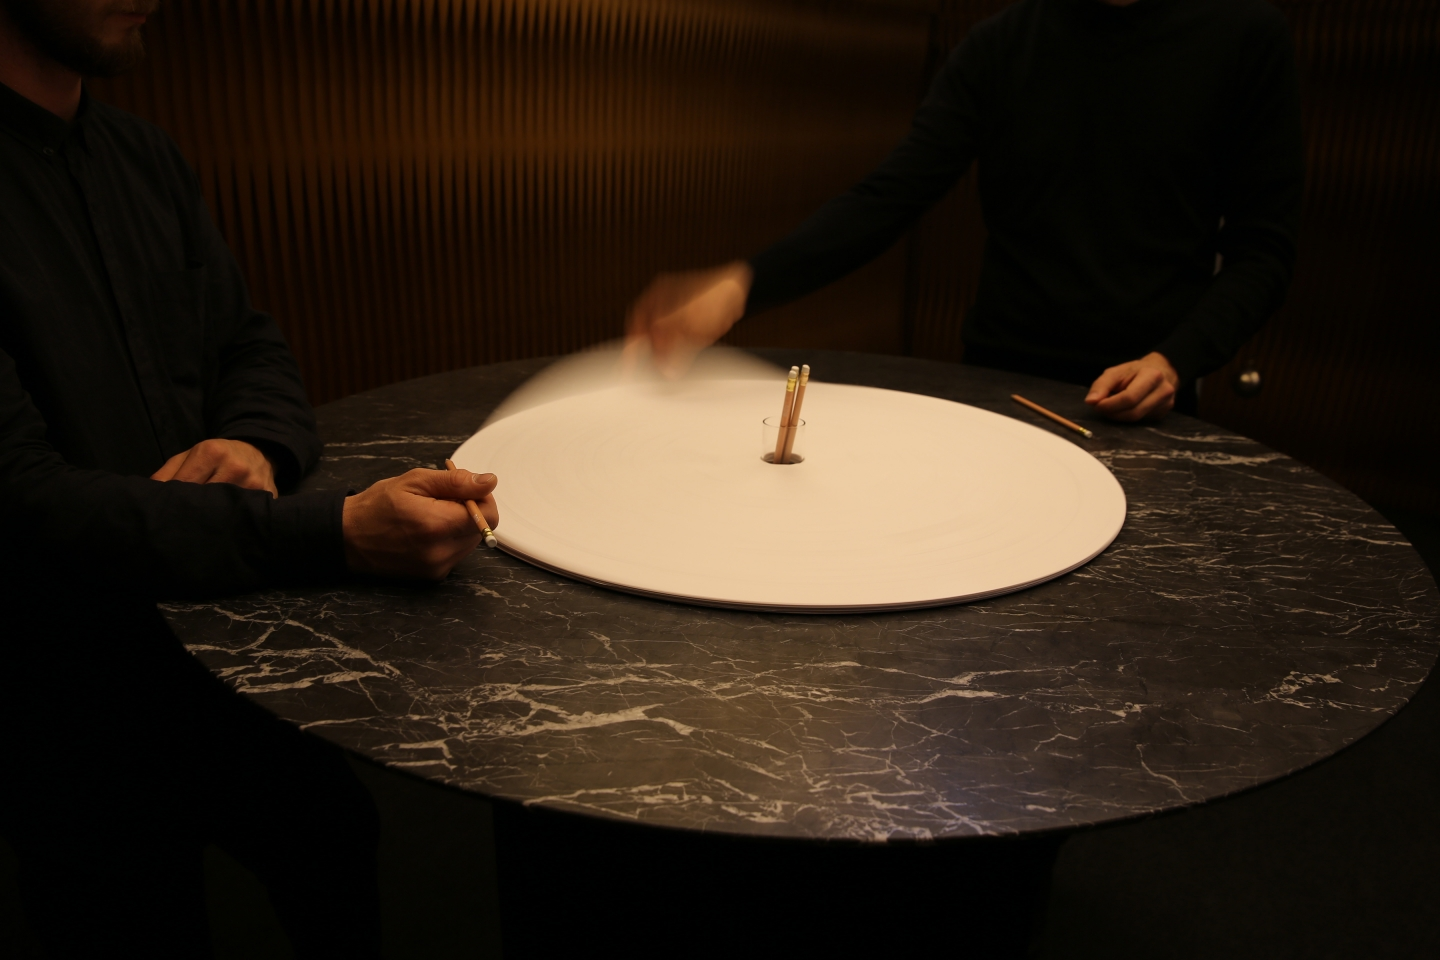 cantilever table by molo - molo's sketching circle accessory spins around a black Vancouver Island marble tabletop